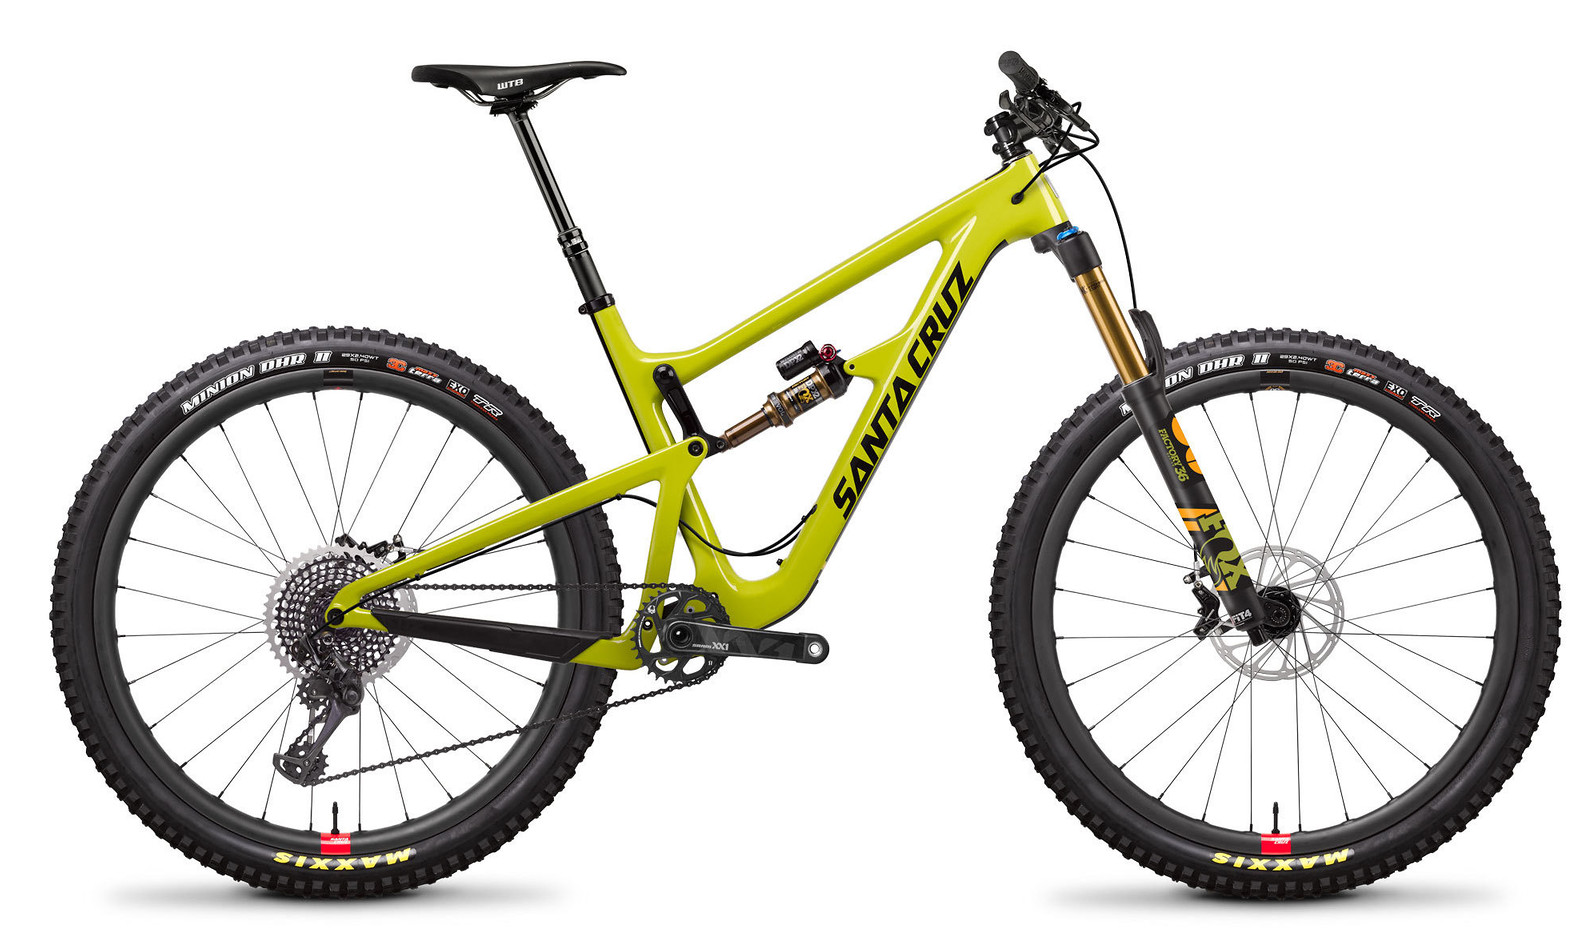 2018 Santa Cruz Hightower LT CC XX1 29 Reserve